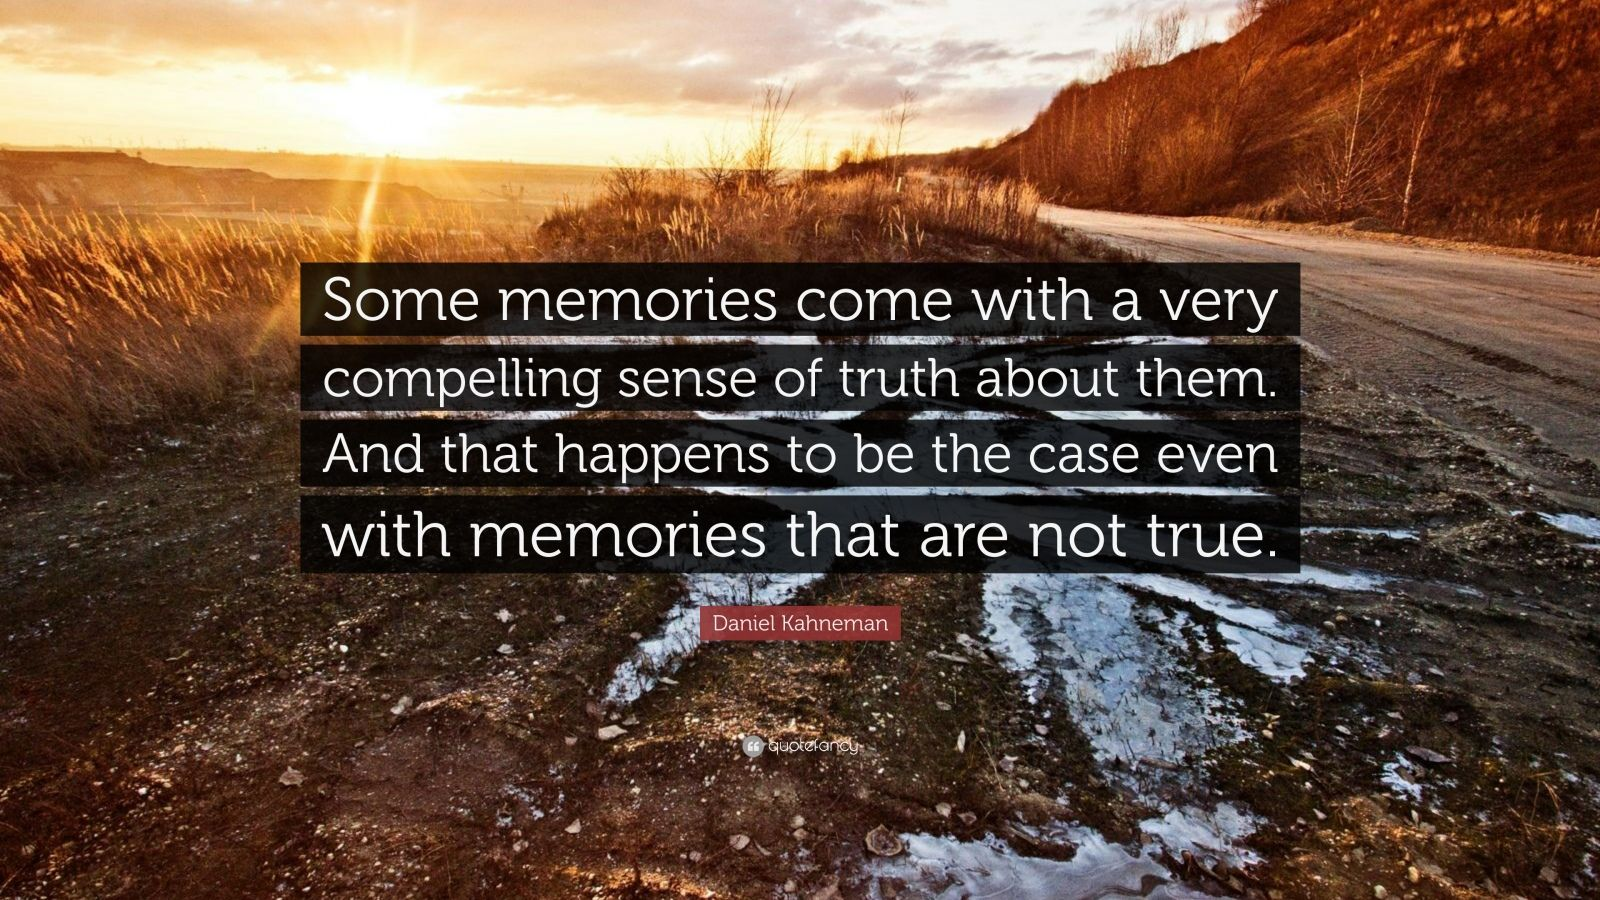 """Daniel Kahneman Quote: """"Some memories come with a very compelling sense of truth about them. And that happens to be the case even with memories that are not true."""""""